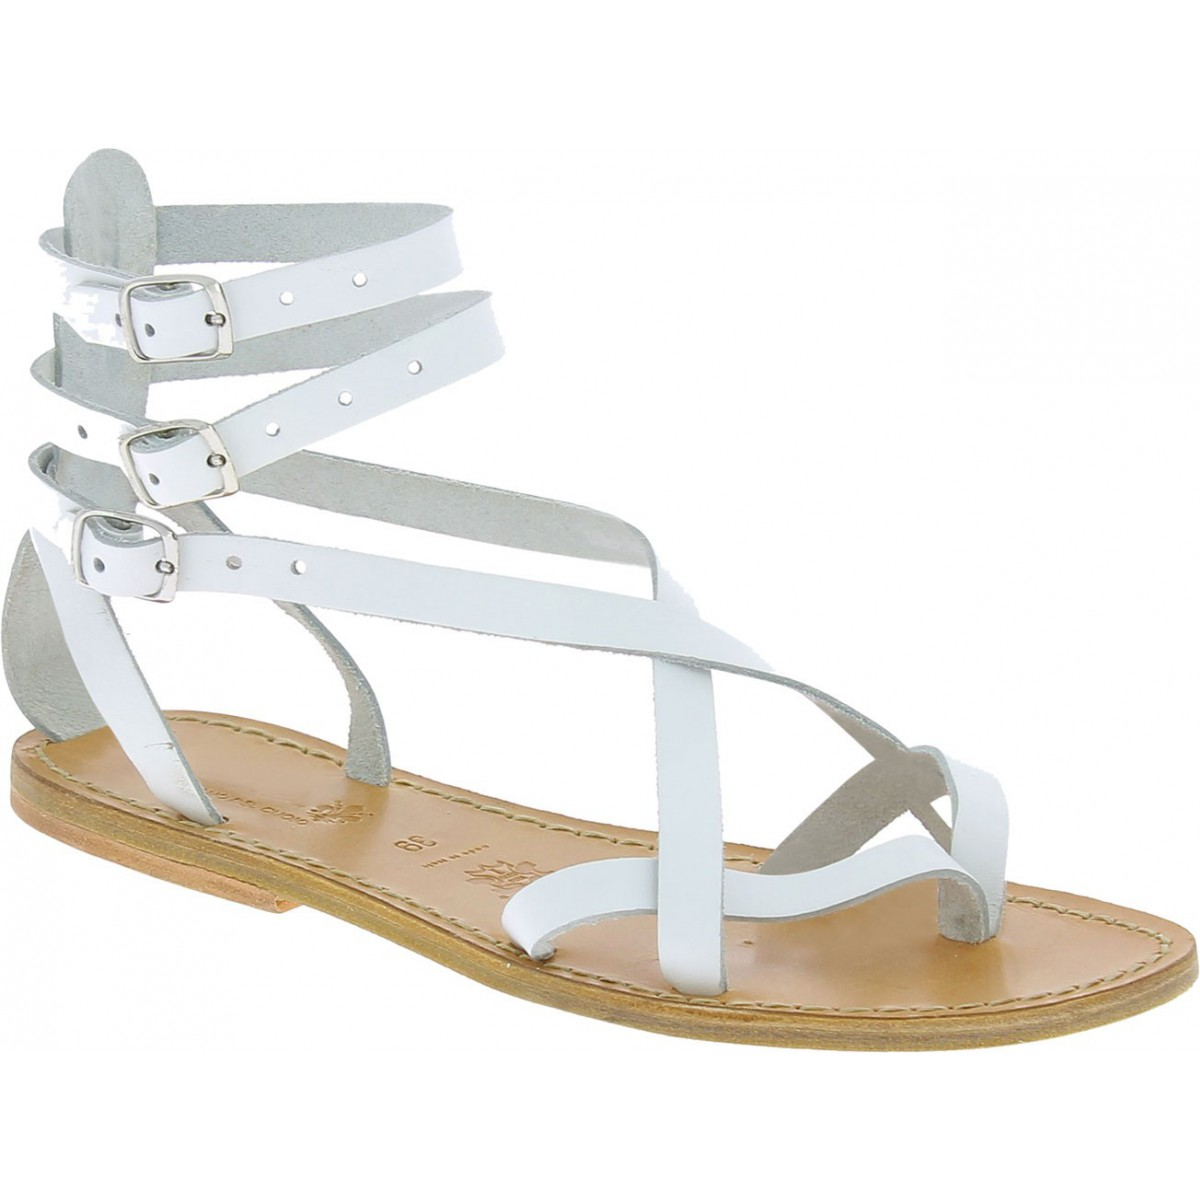 Italy womens strappy sandals